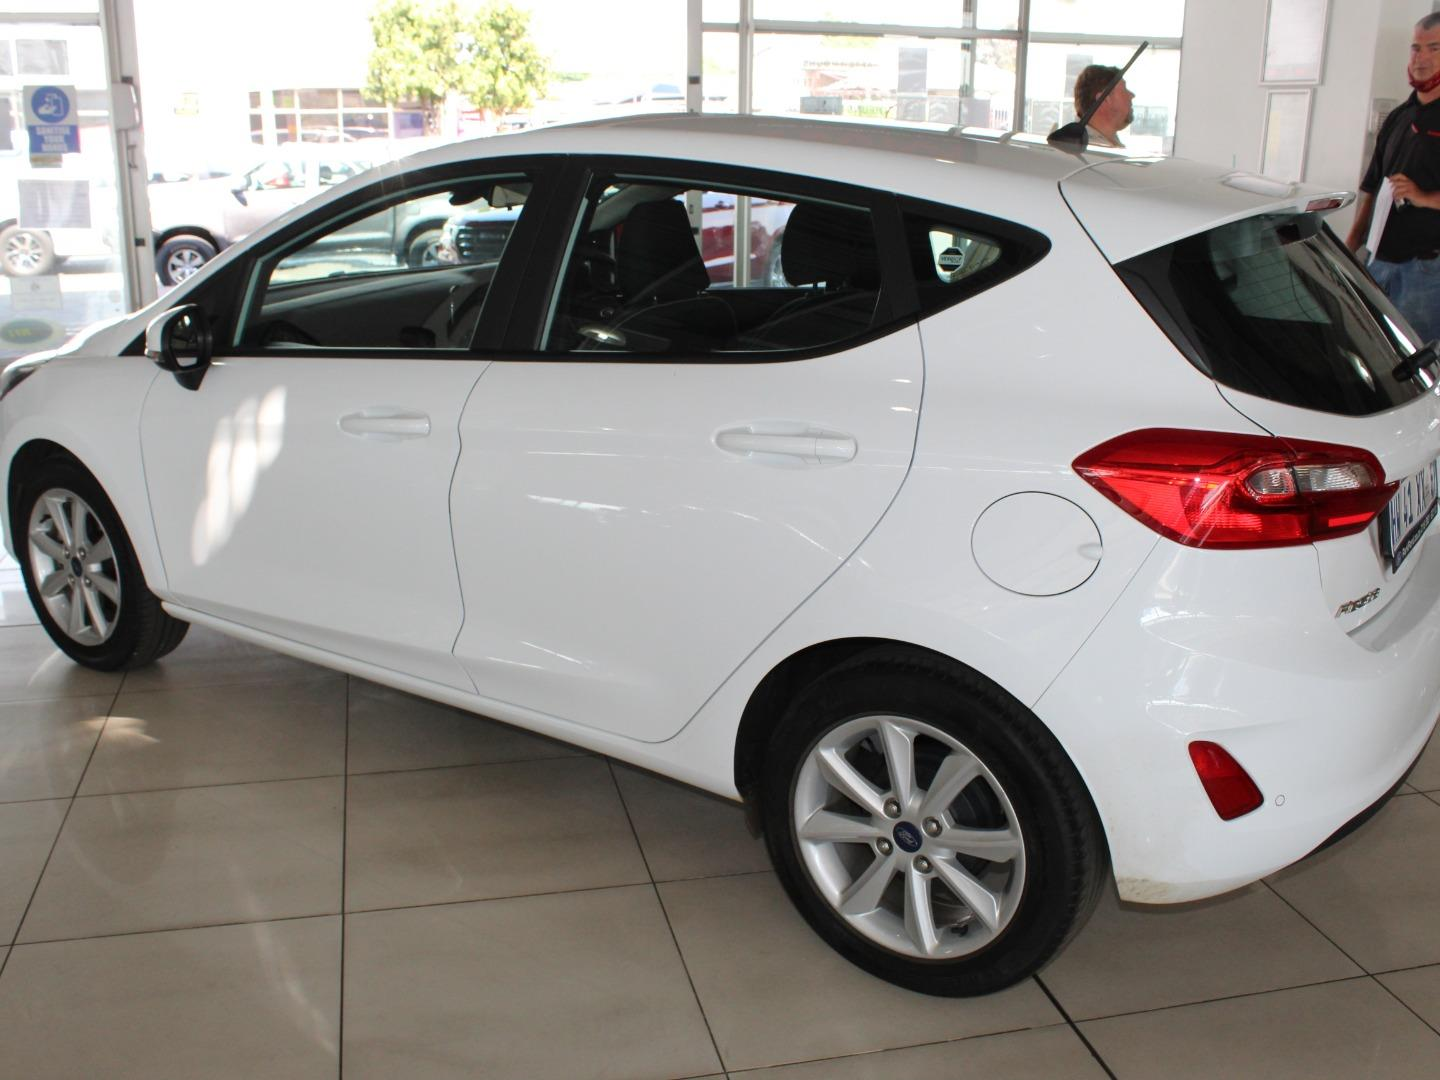 2019 Ford Fiesta 1.0T Trend- Picture 7